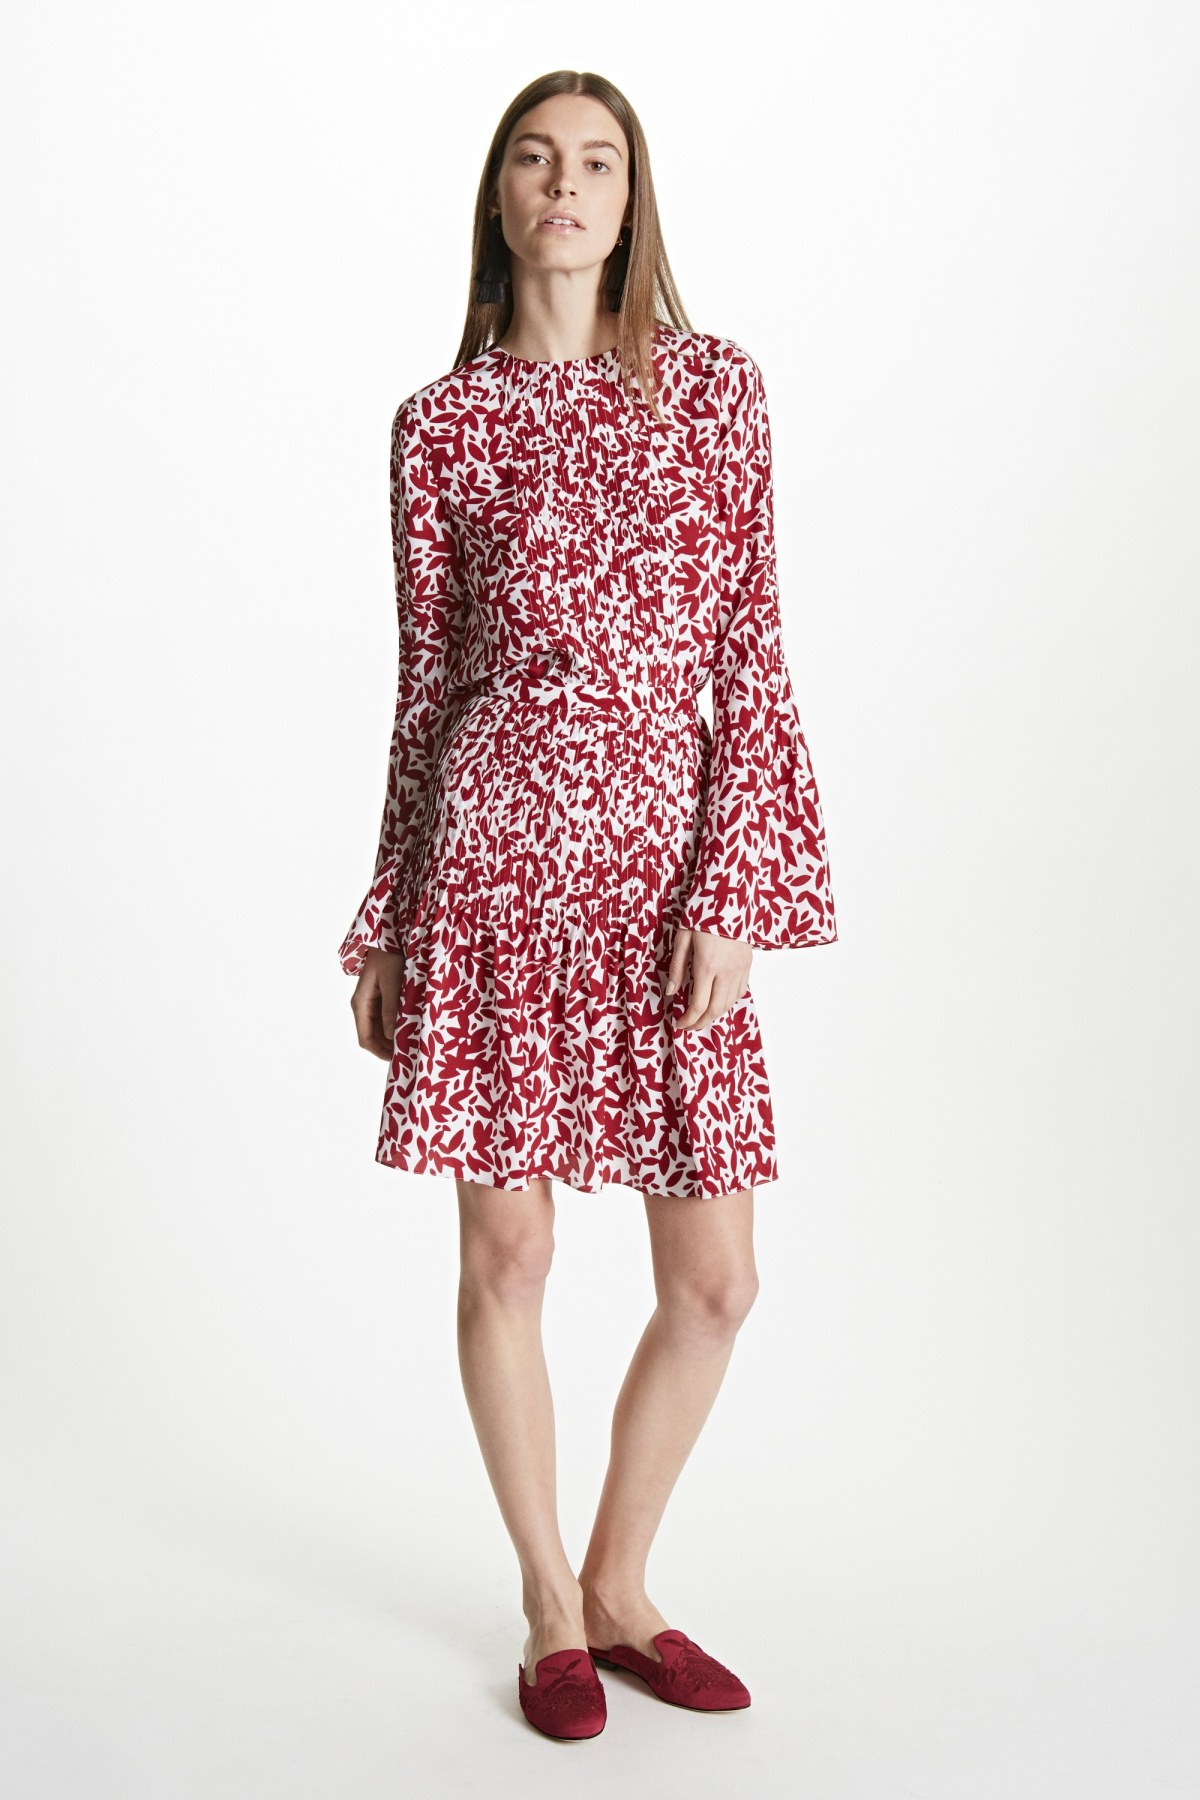 oscar-de-la-renta-pre-fall-2017-fashion-show-the-impression-12